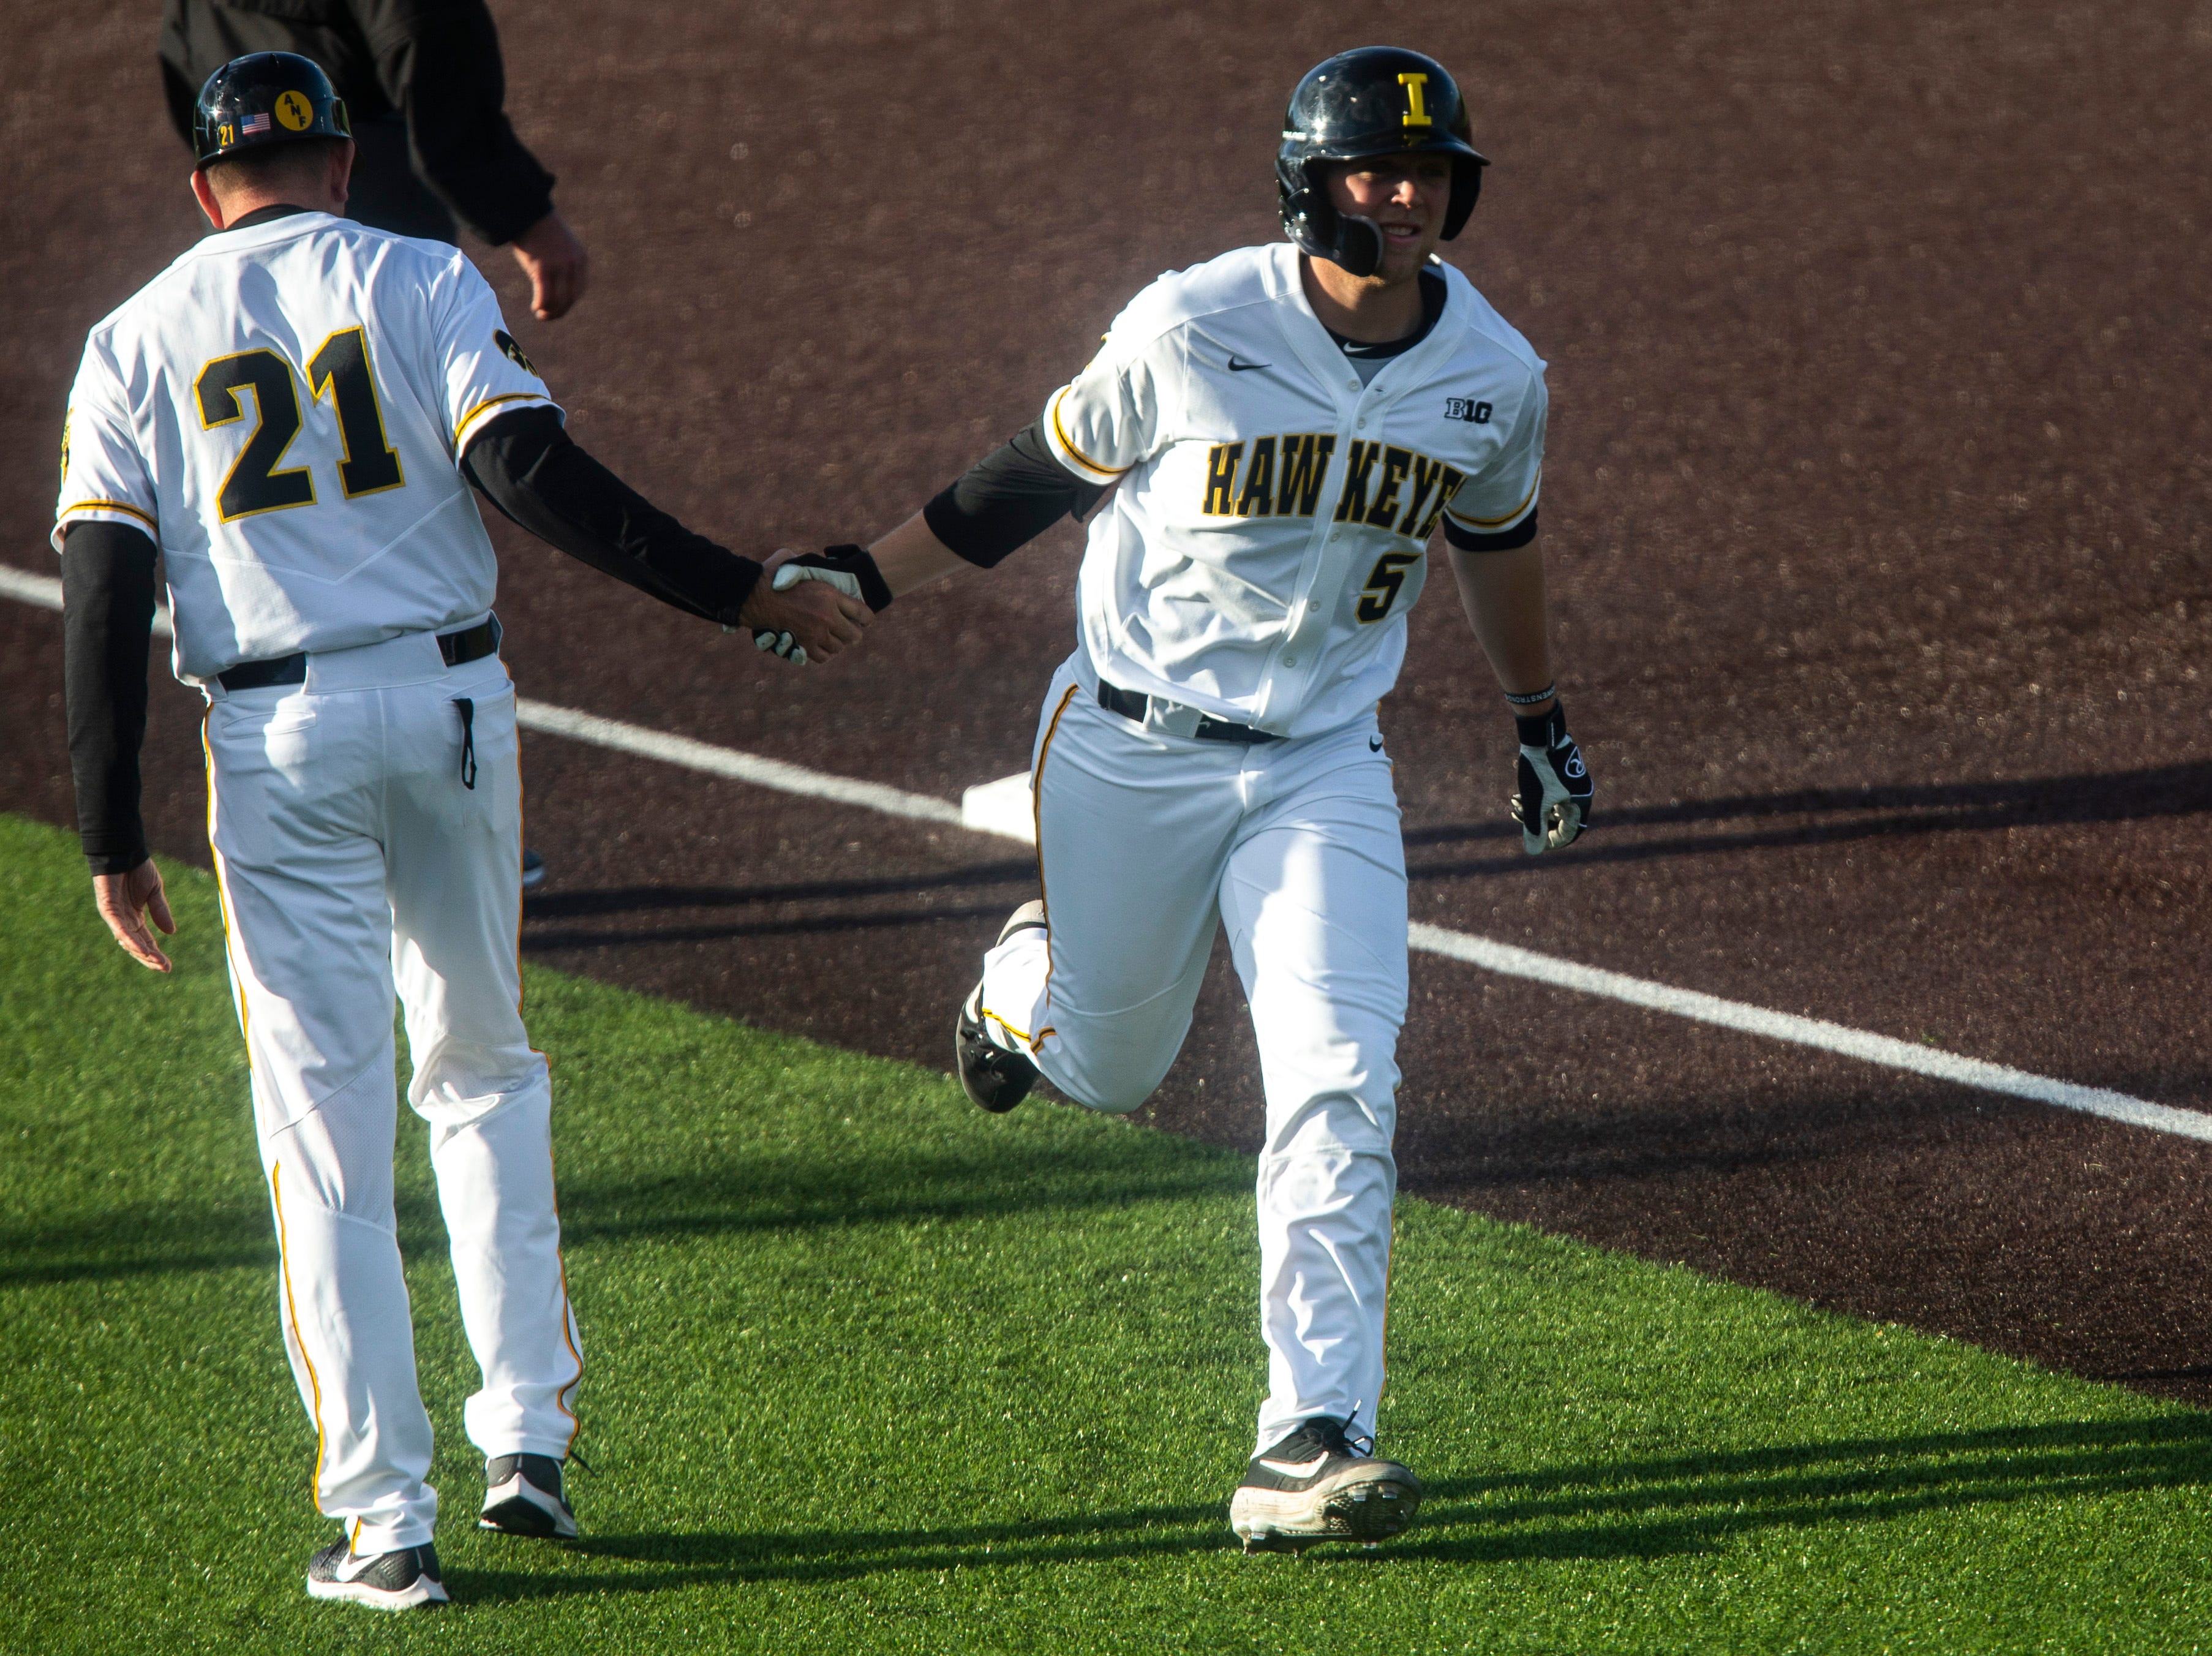 Iowa's Zeb Adreon (5) high-fives Iowa head coach Rick Heller while rounding third after hitting a grand slam during a NCAA Big Ten Conference baseball game, Friday, May 10, 2019, at Duane Banks Field on the University of Iowa campus in Iowa City, Iowa.